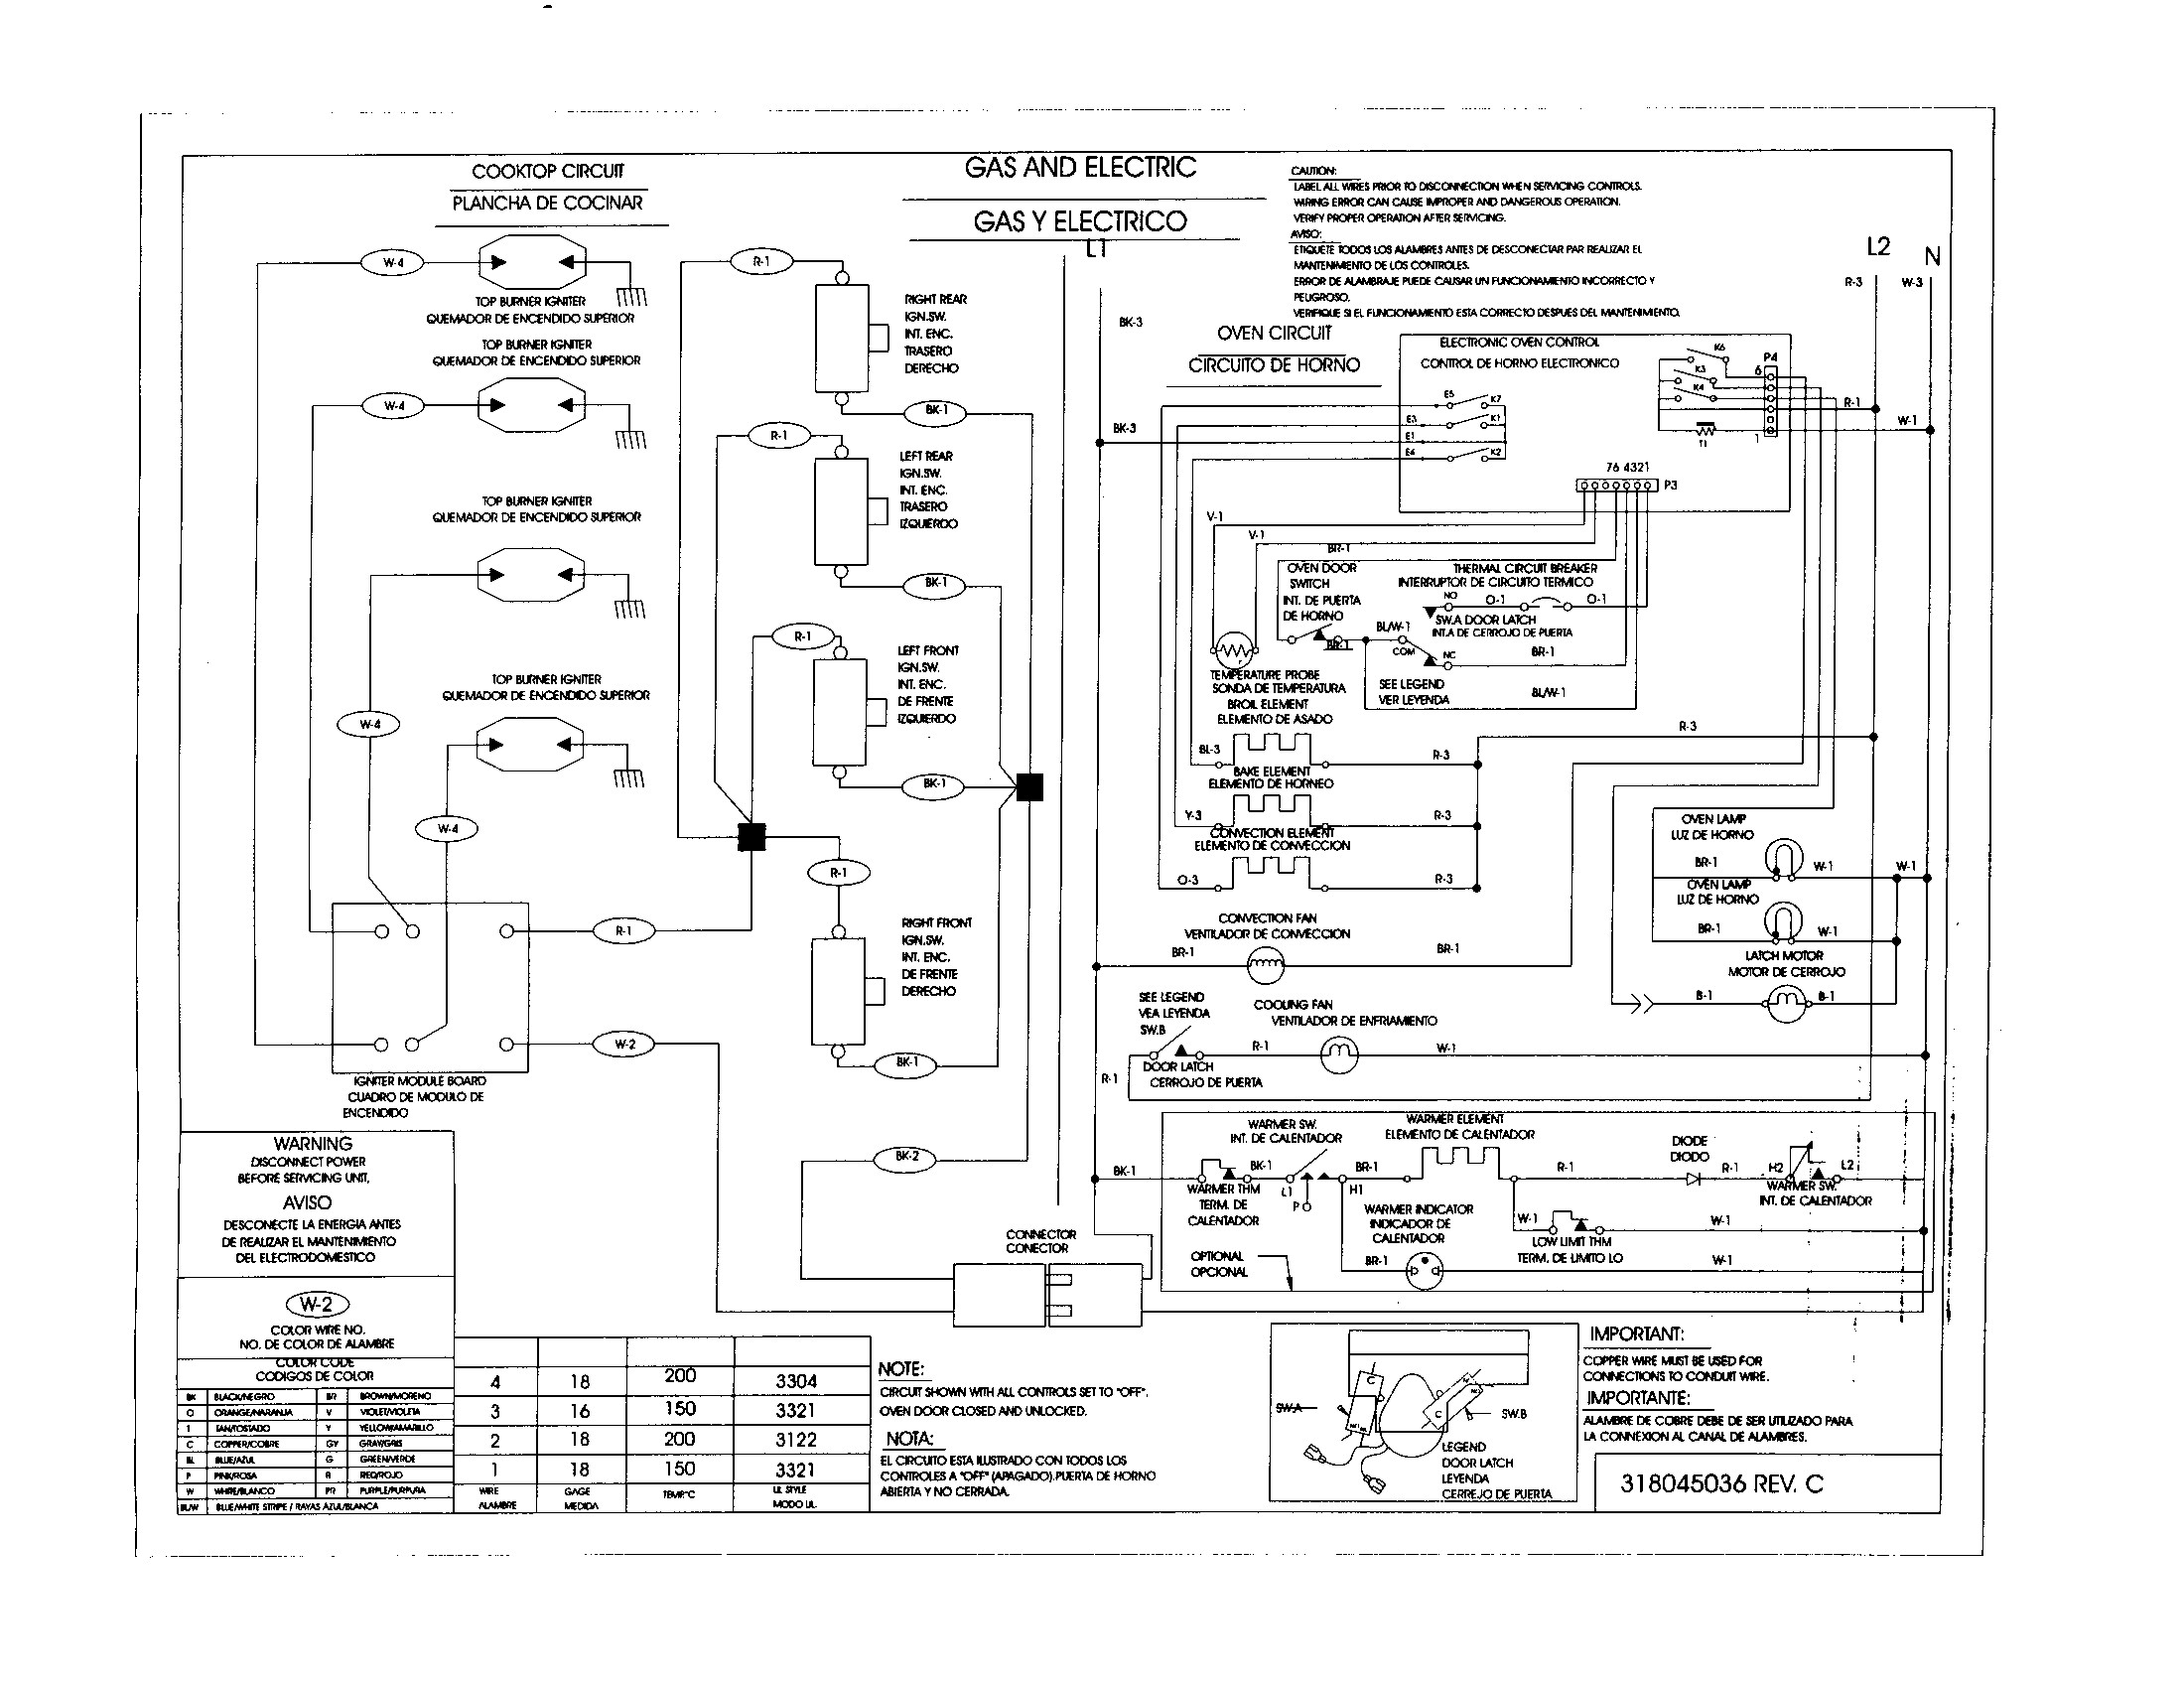 kitchenaid dishwasher electrical diagram on ge electric range wiring rh 144 202 61 13 Wiring Schematics for Cars Residential Electrical Wiring Diagrams